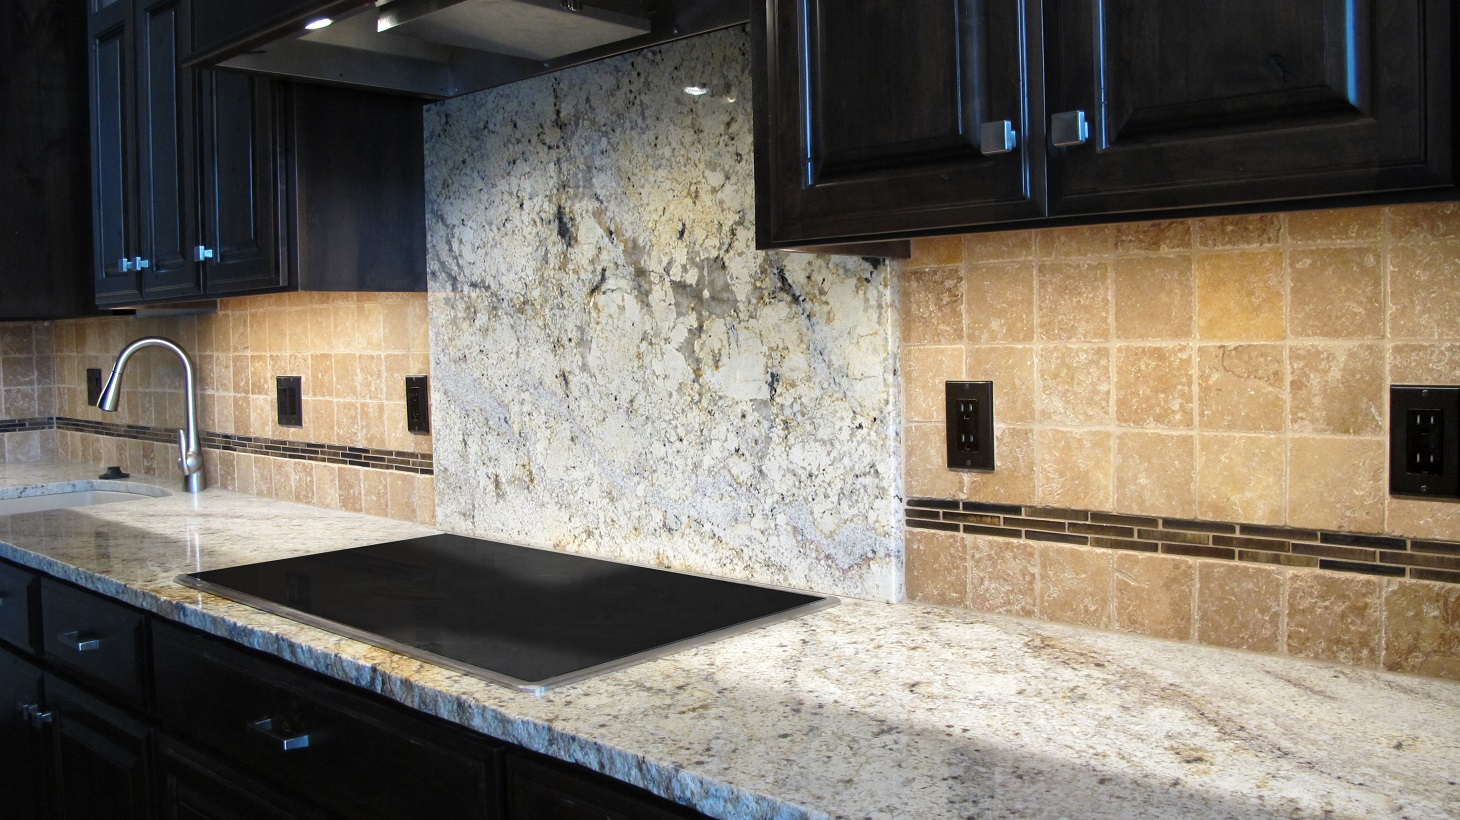 Cascade retreat kitchen backsplash rustic granite countertops tumbled travertine noce fashion accents daltile shimmer 58x3 umber dailygadgetfo Choice Image